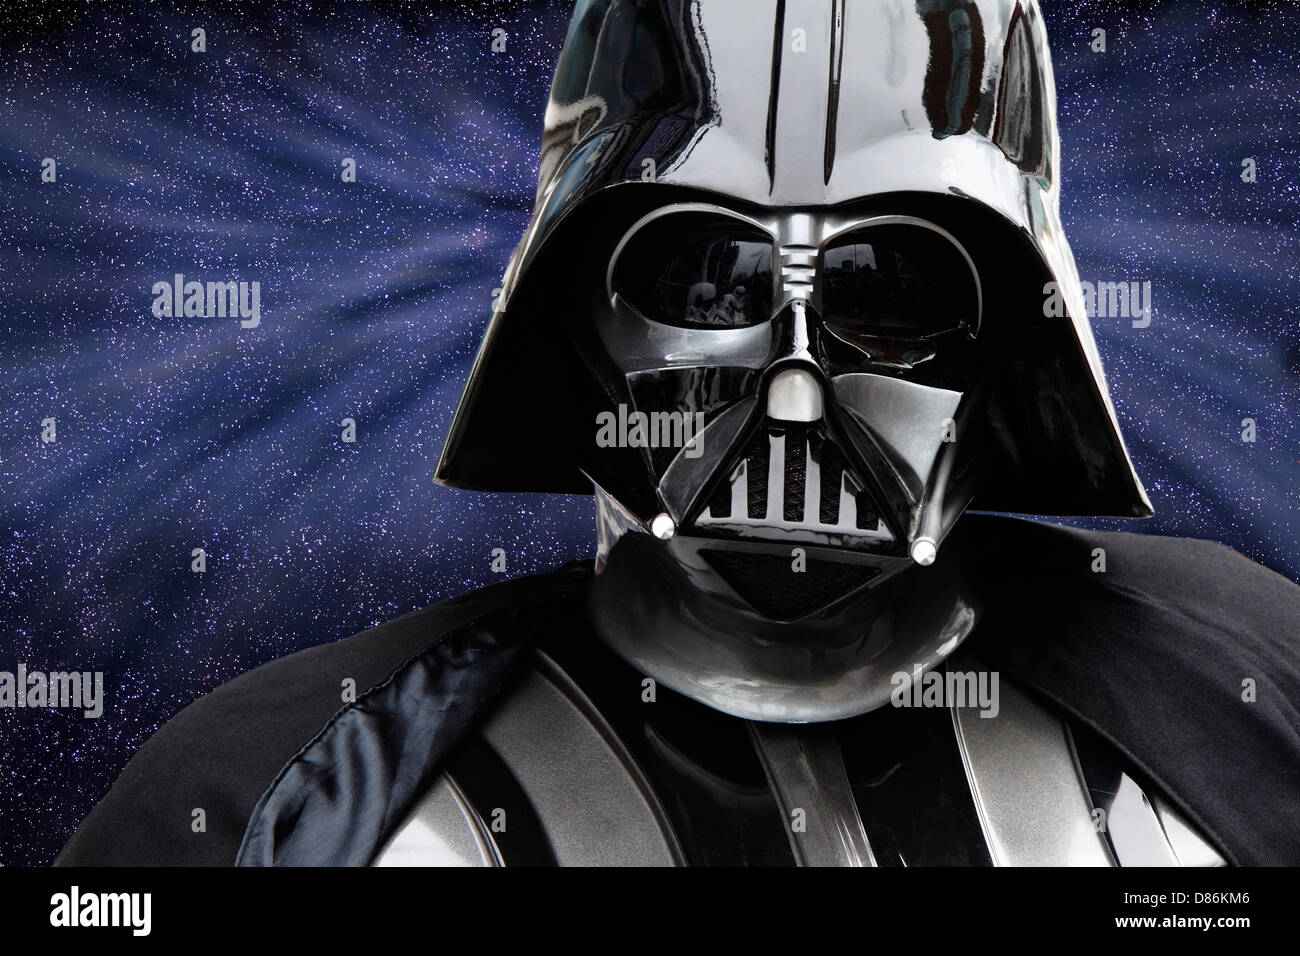 Darth Vader character from Star Wars series of films - Stock Image